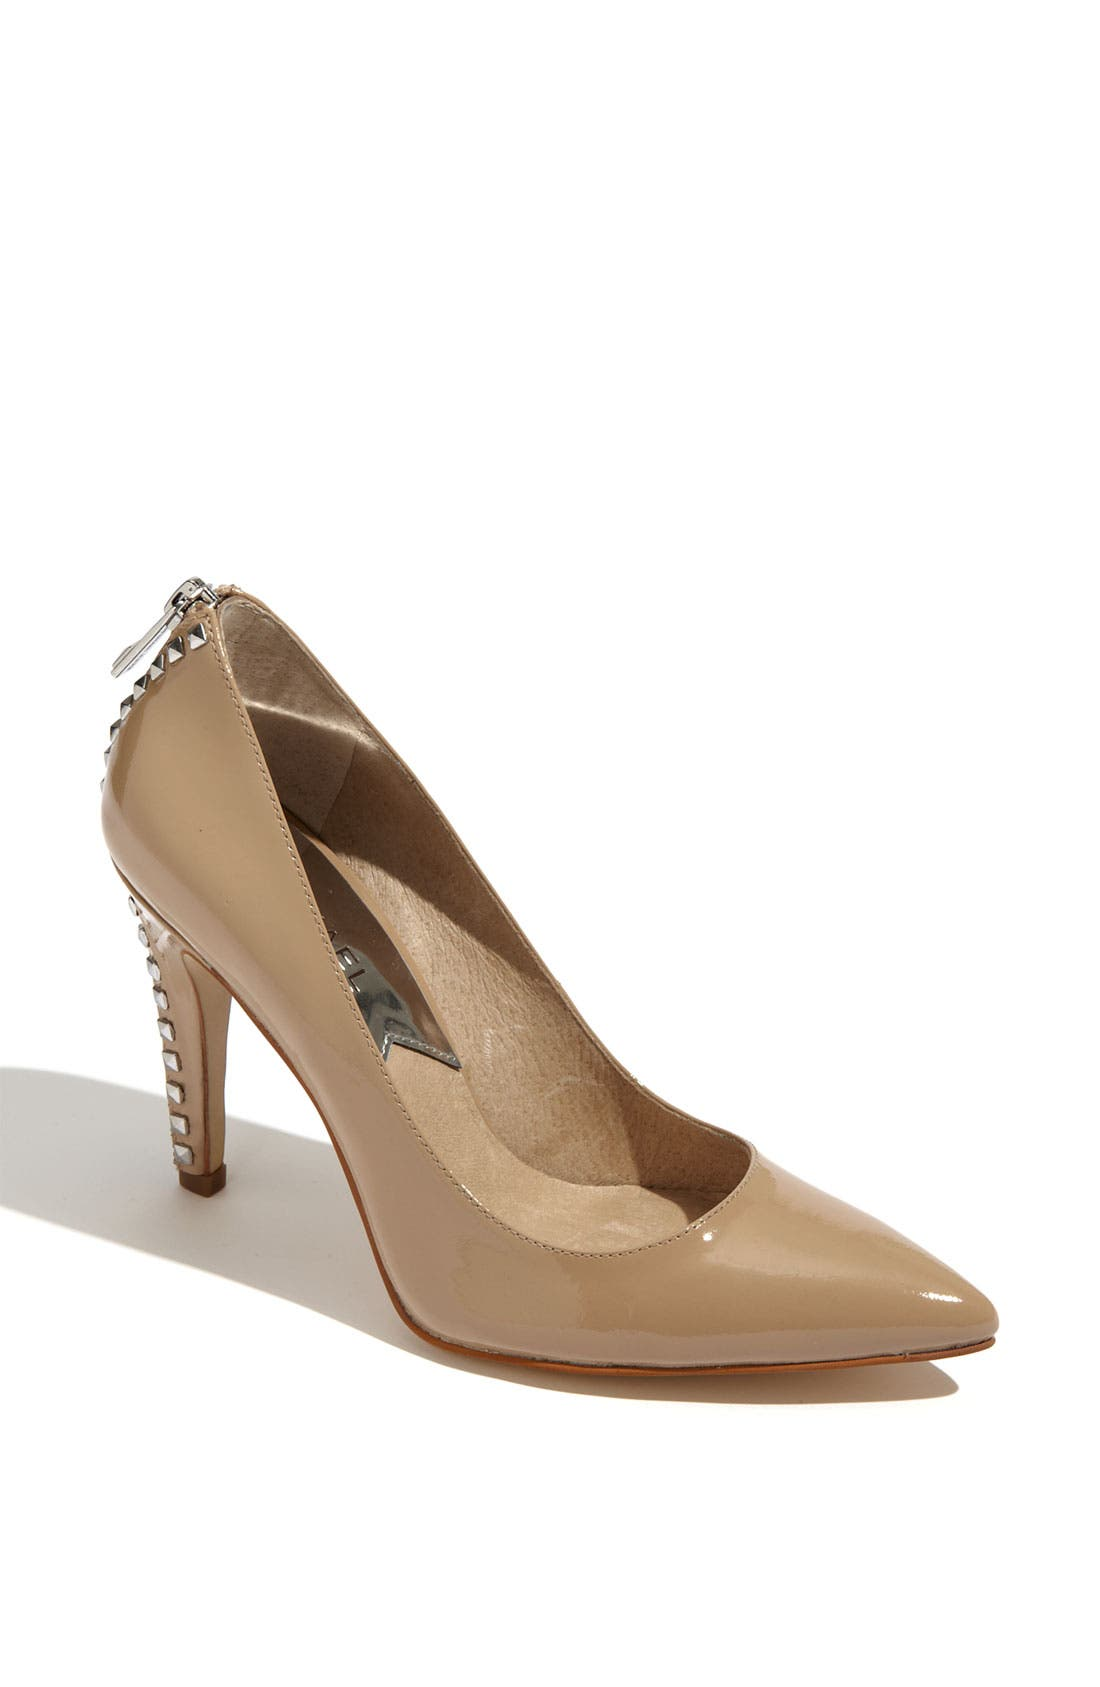 Alternate Image 1 Selected - MICHAEL Michael Kors 'Rock 'n' Roll' Pump